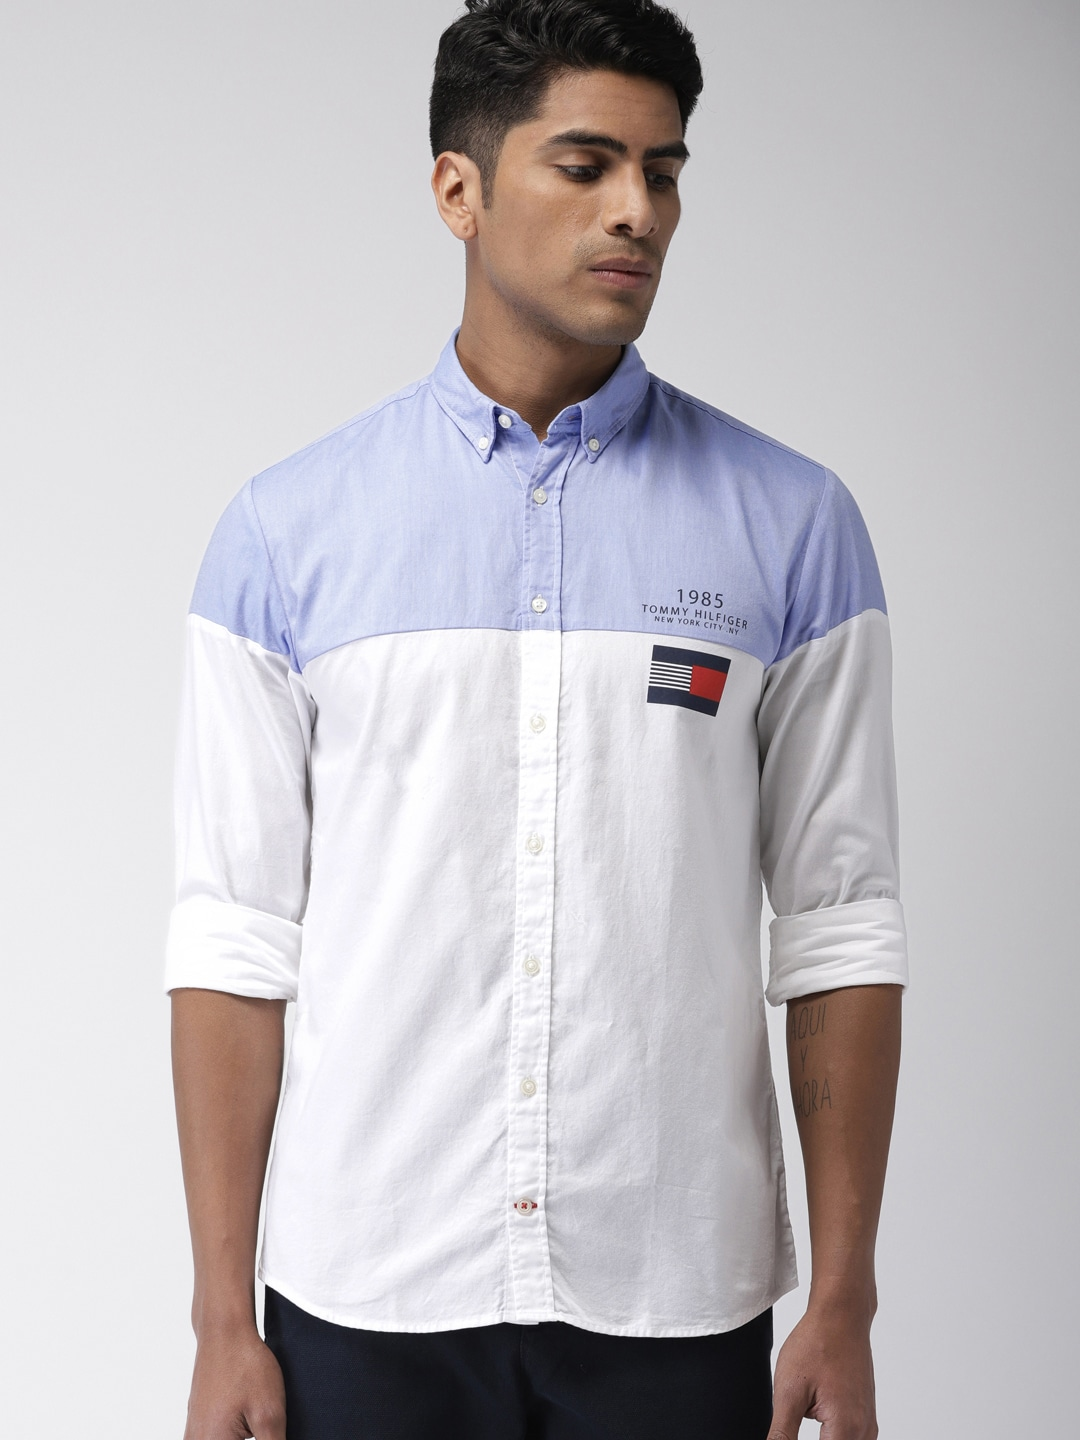 3aed0836b0a3 Tommy Hilfiger Shirt - Buy Tommy Hilfiger Shirt online in India